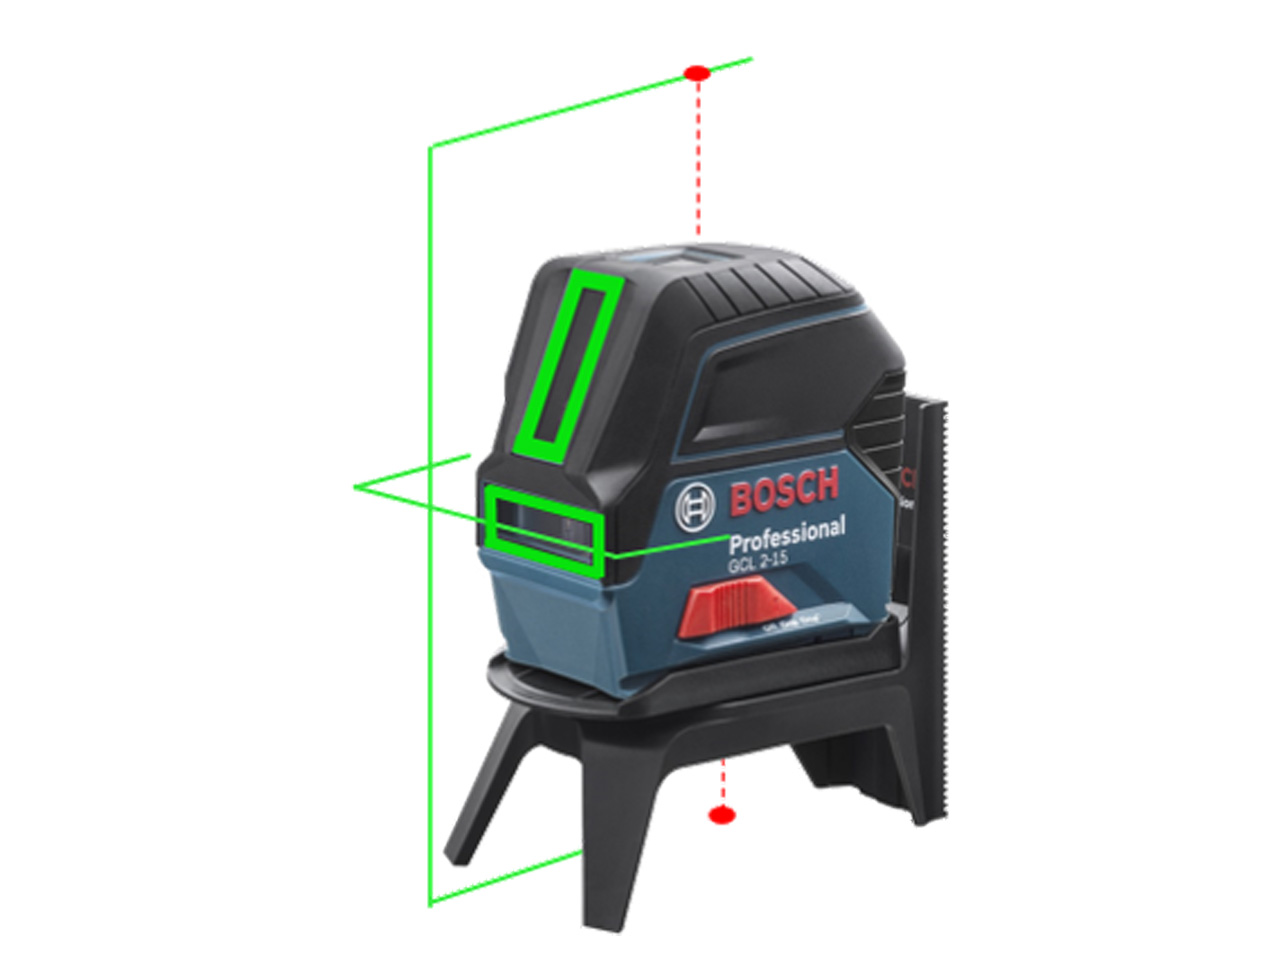 bosch gcl 215 g professional green beam combi laser. Black Bedroom Furniture Sets. Home Design Ideas